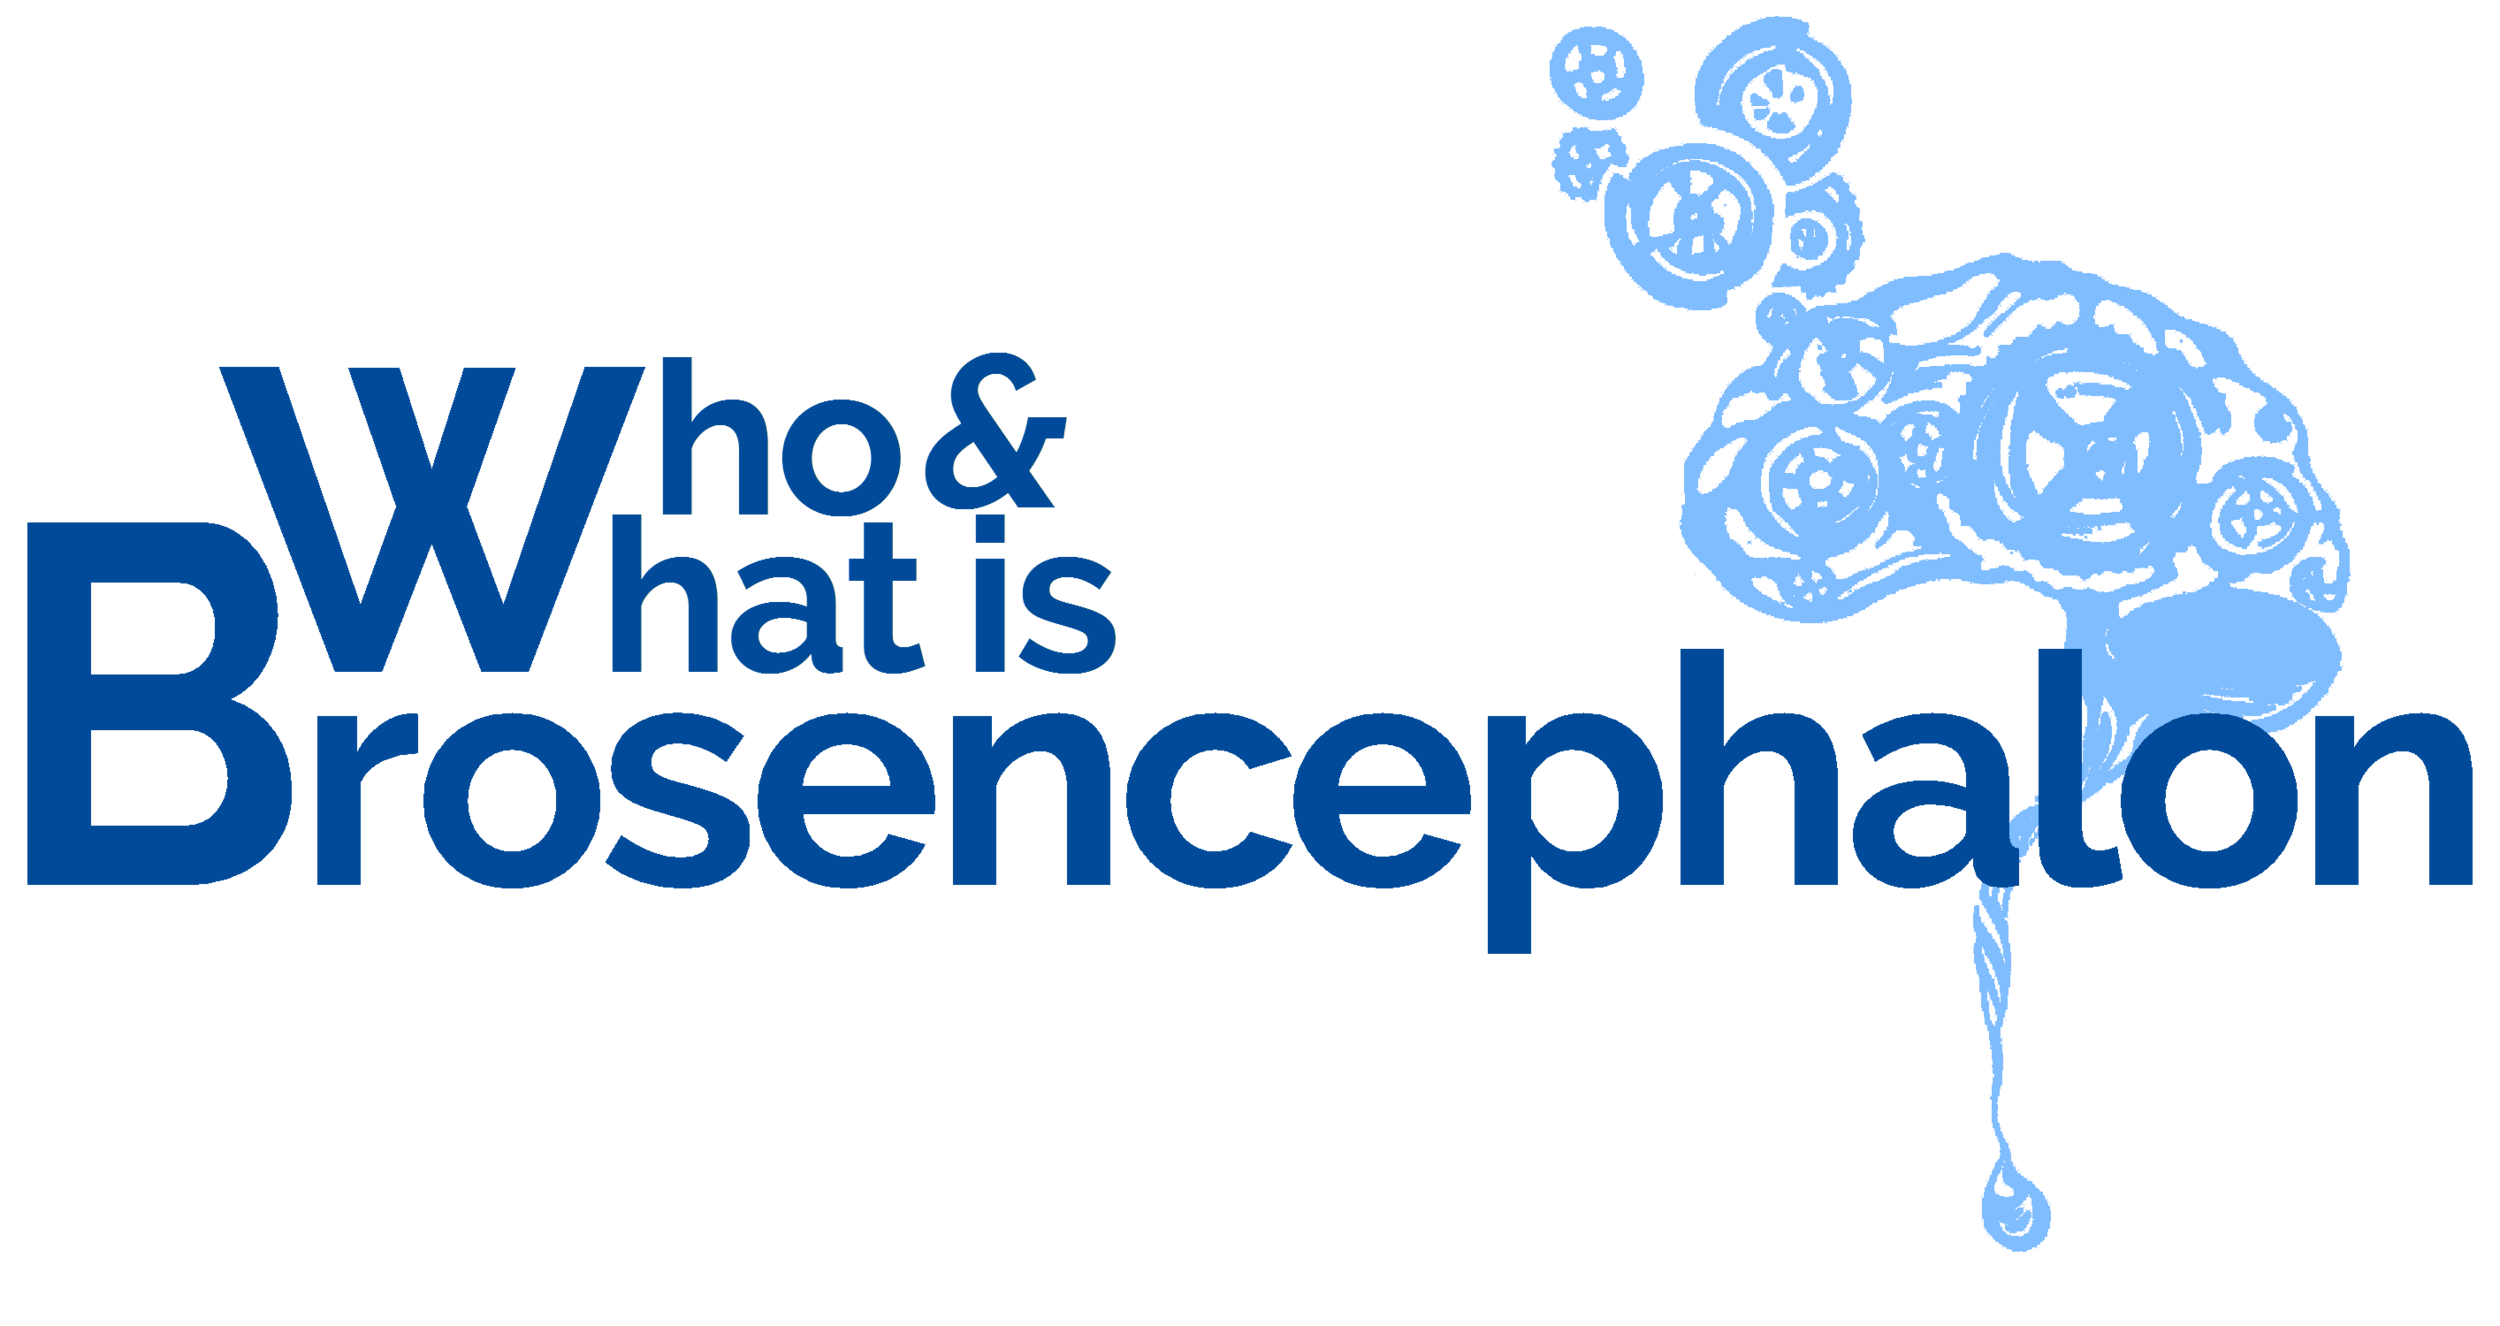 Who and What is Brosencephalon